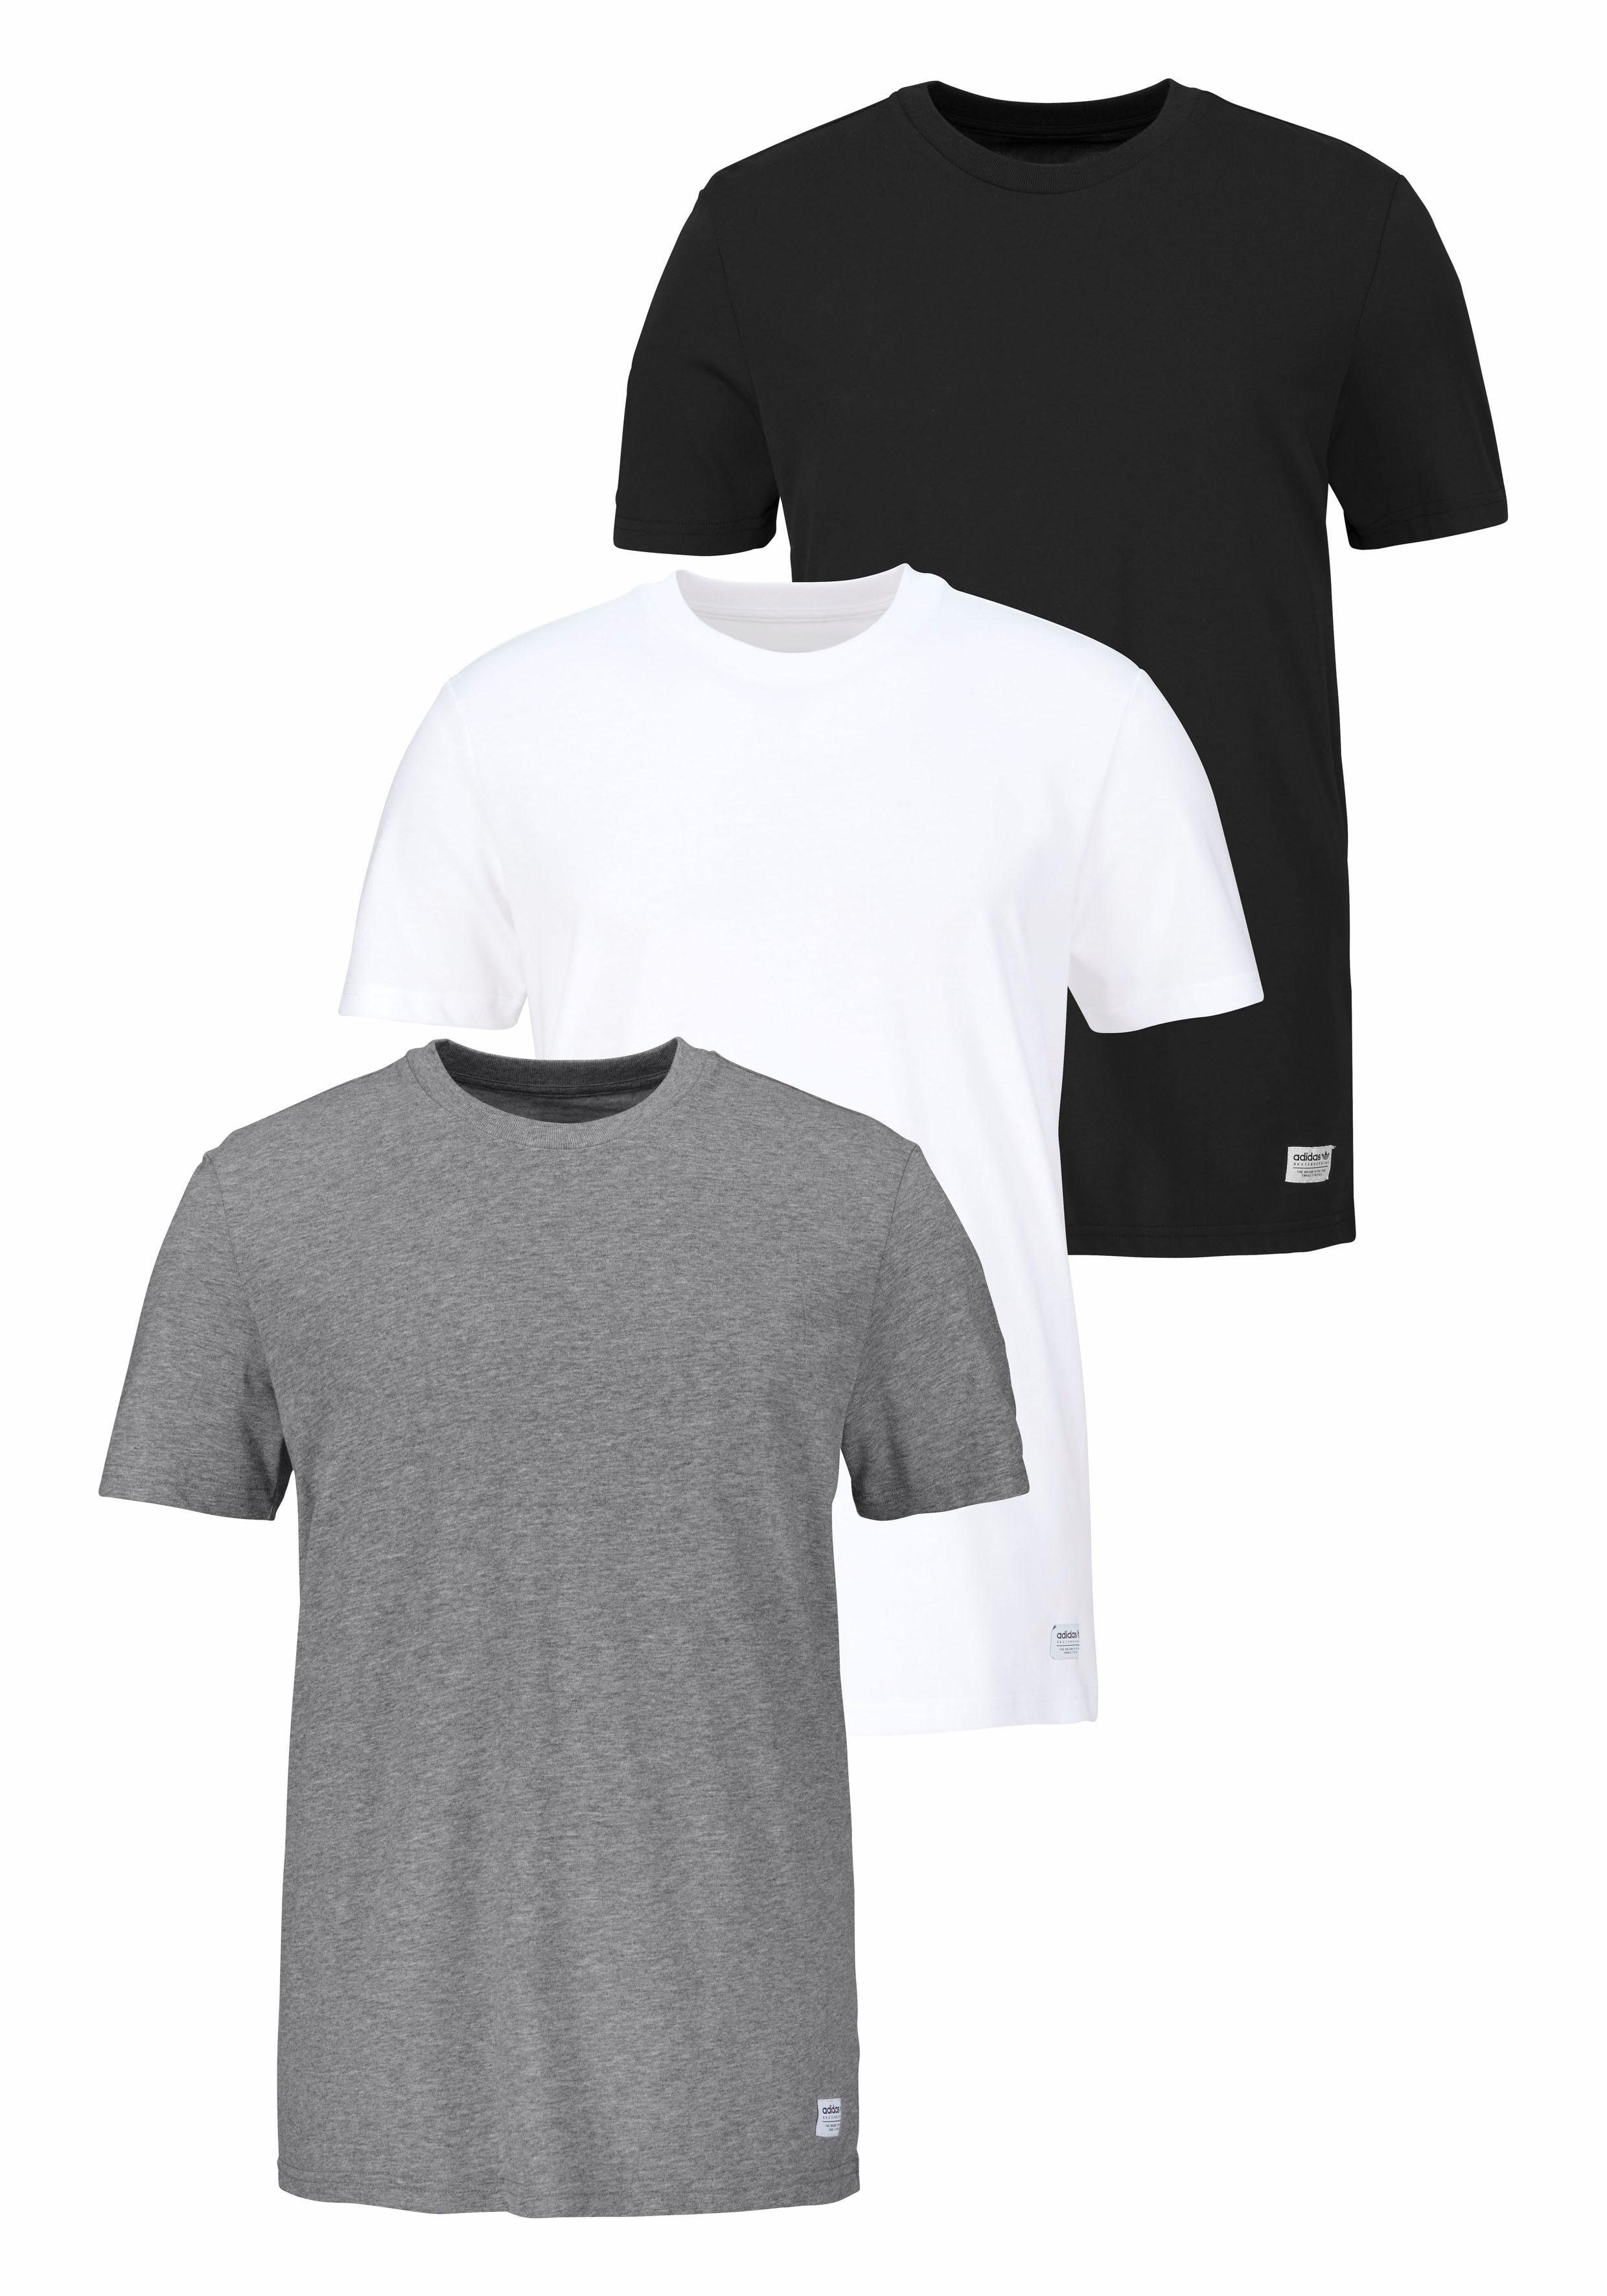 adidas Originals T Shirt »3 PACK TEES« (Spar Set, 3 tlg., 3er Pack) online kaufen | OTTO